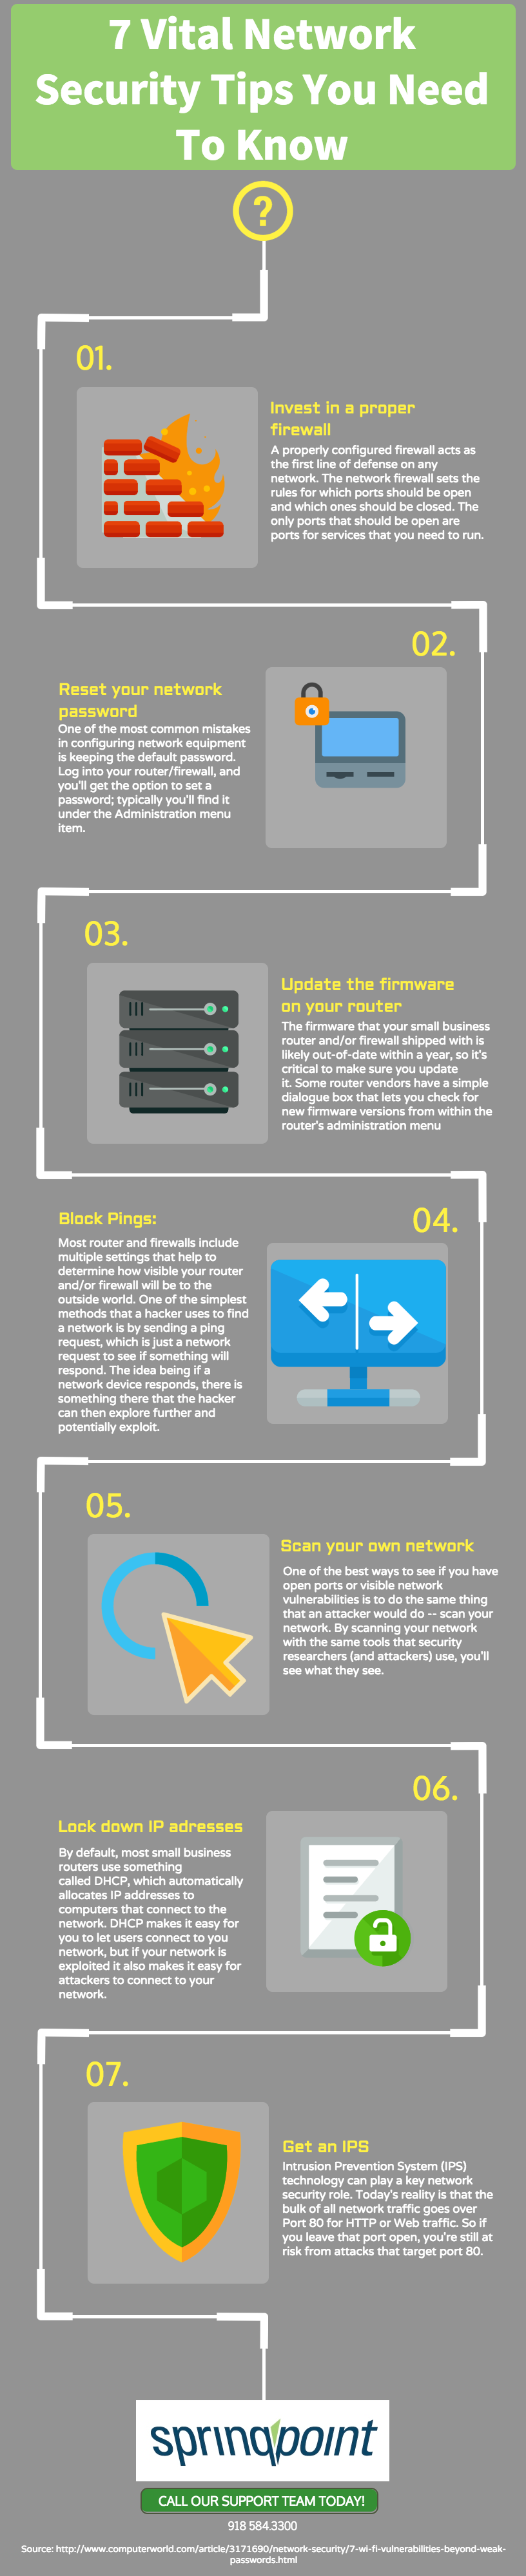 infographic-7 Vital Network Security Tips You Need To Know.png